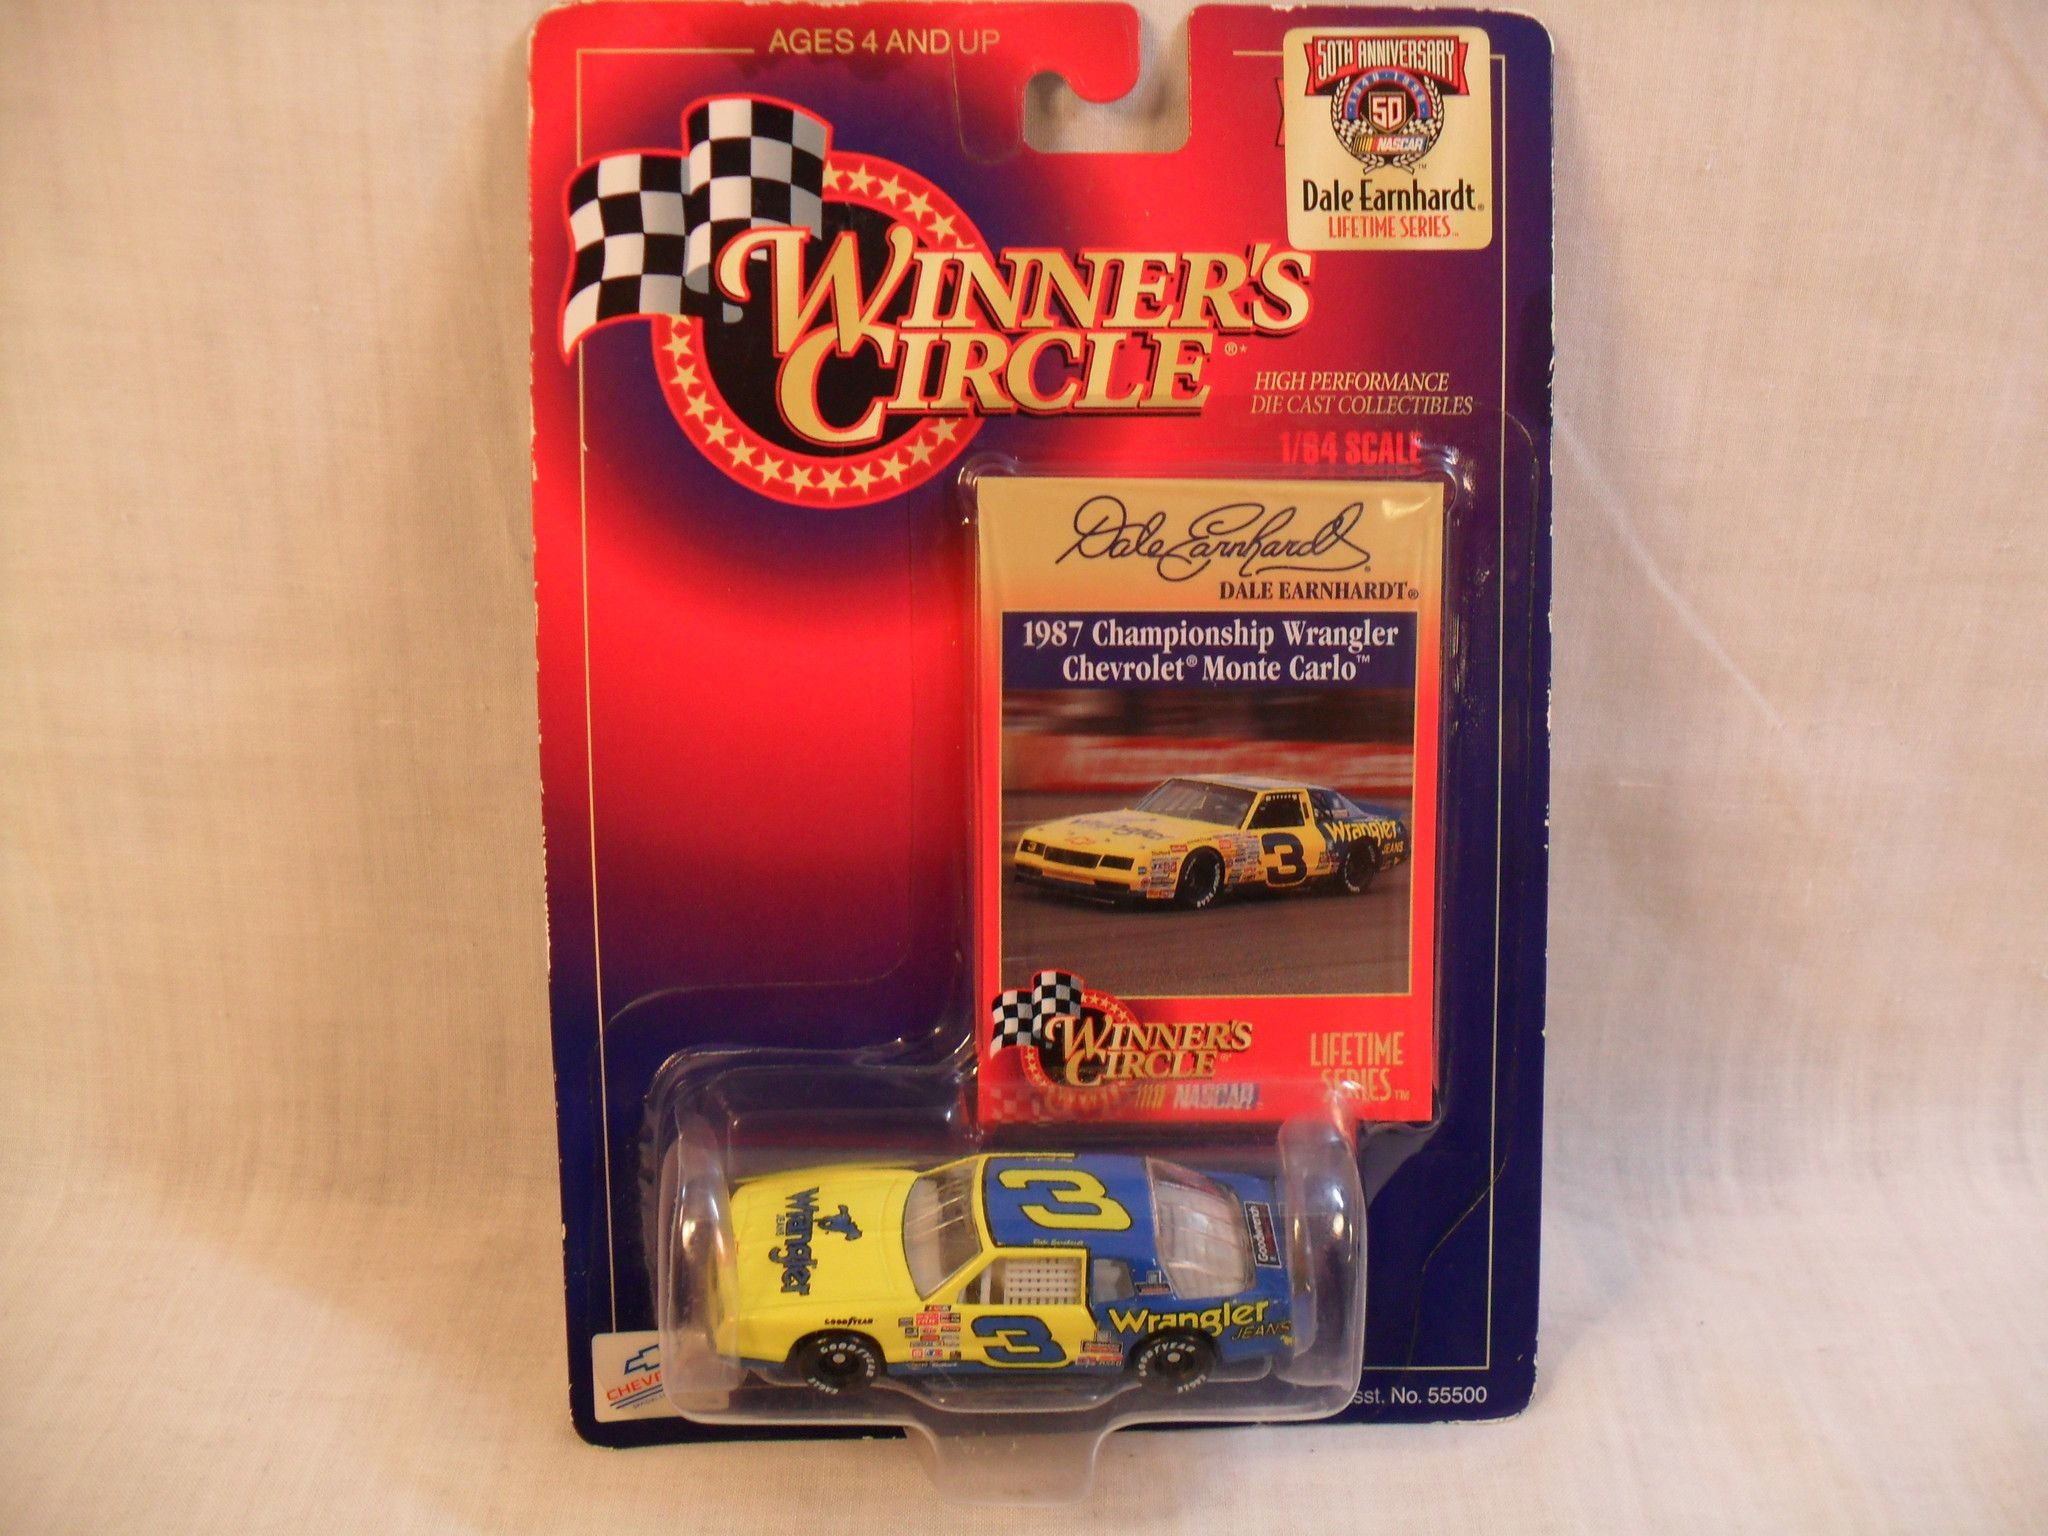 Winners Circle Dale Earnhardt Lifetime Series 1:64 Scale Kenner